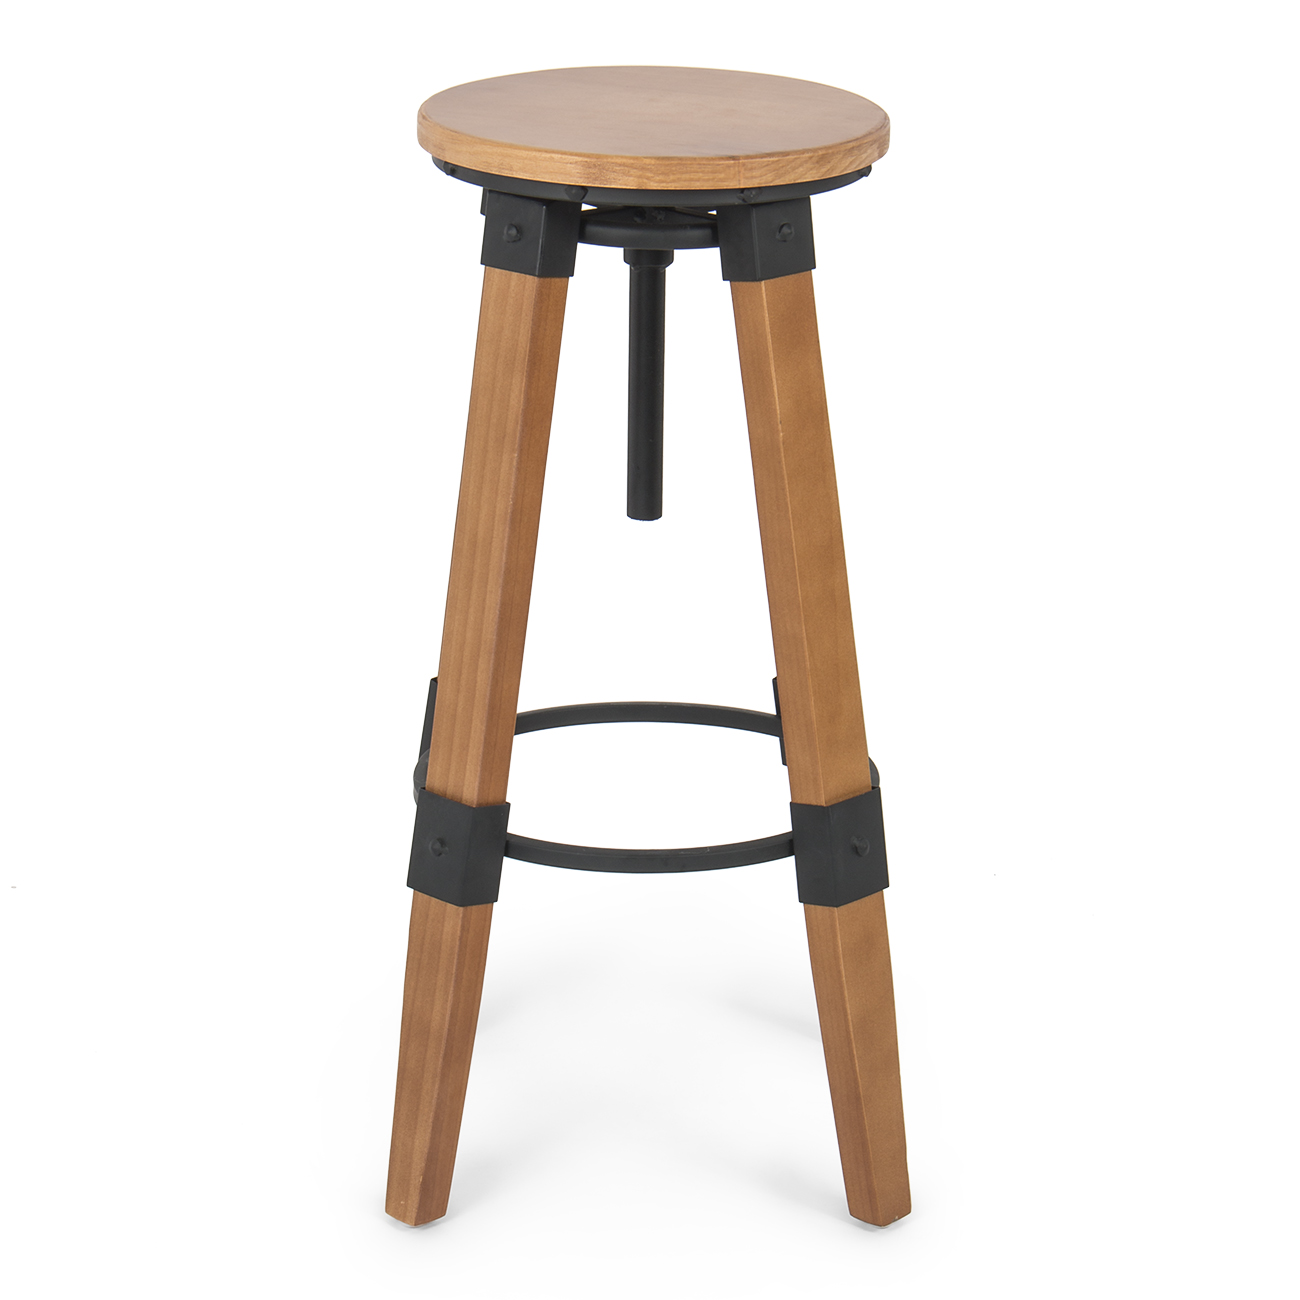 about Industrial Bar Stools Swivel Wood Vintage Adjustable Counter ...